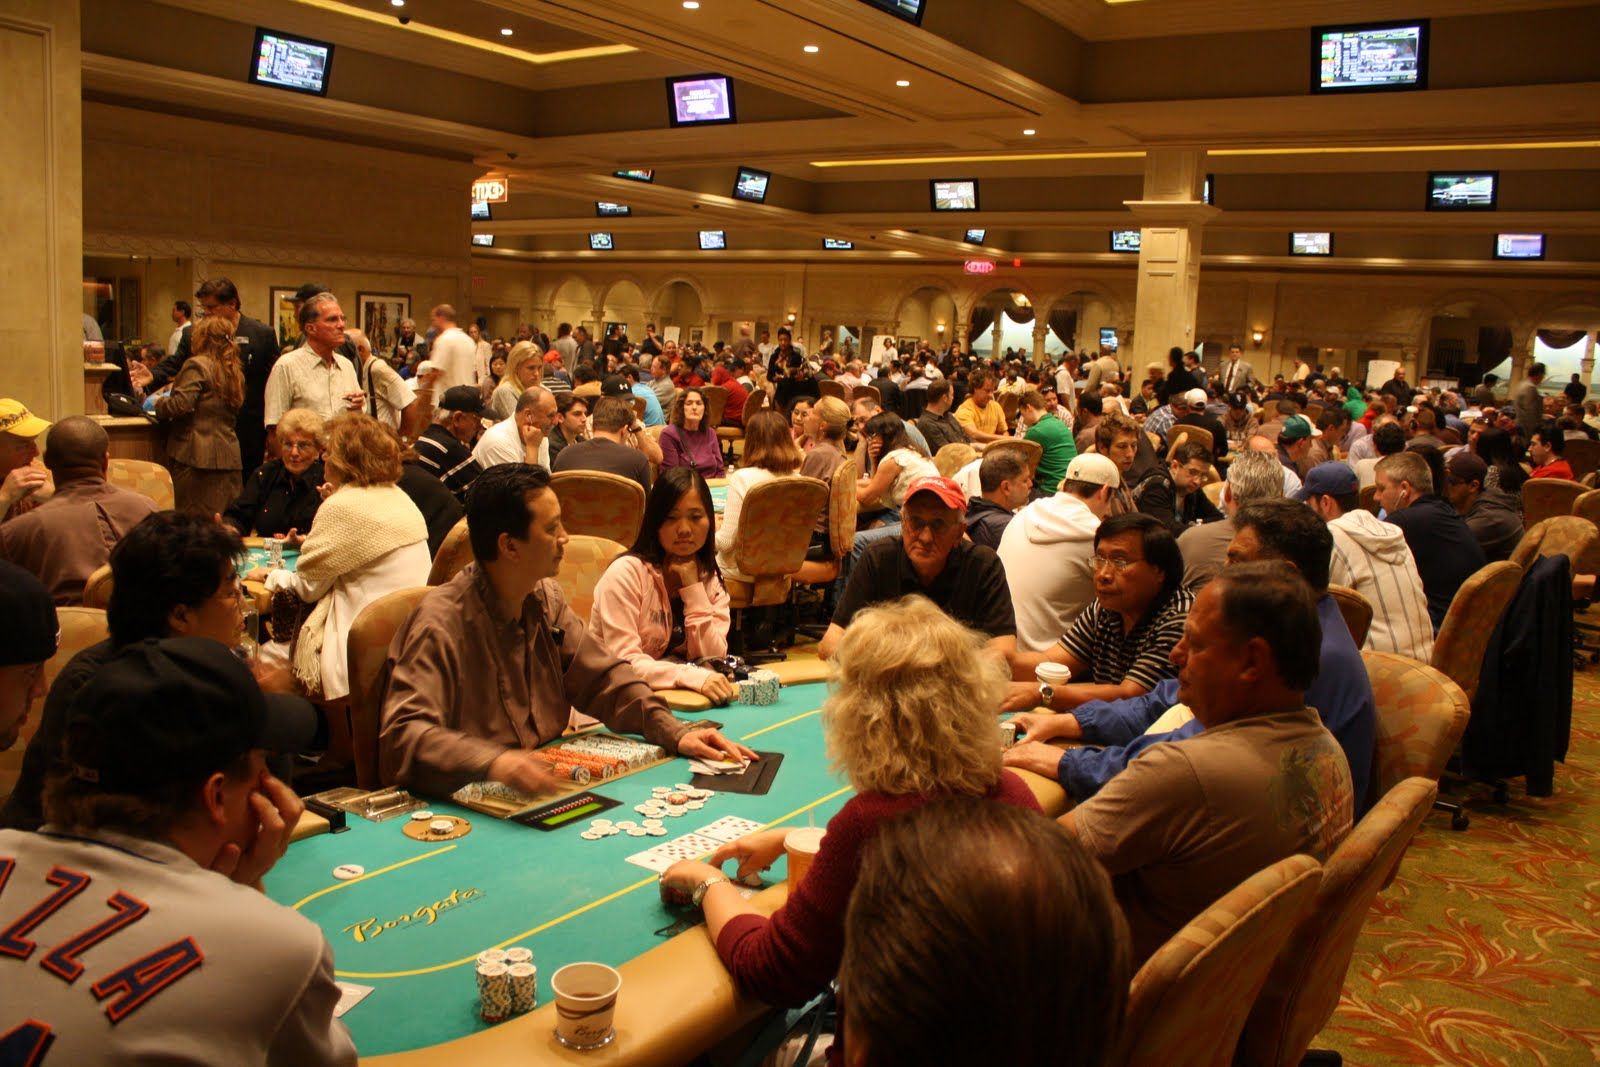 How to start a poker room in florida